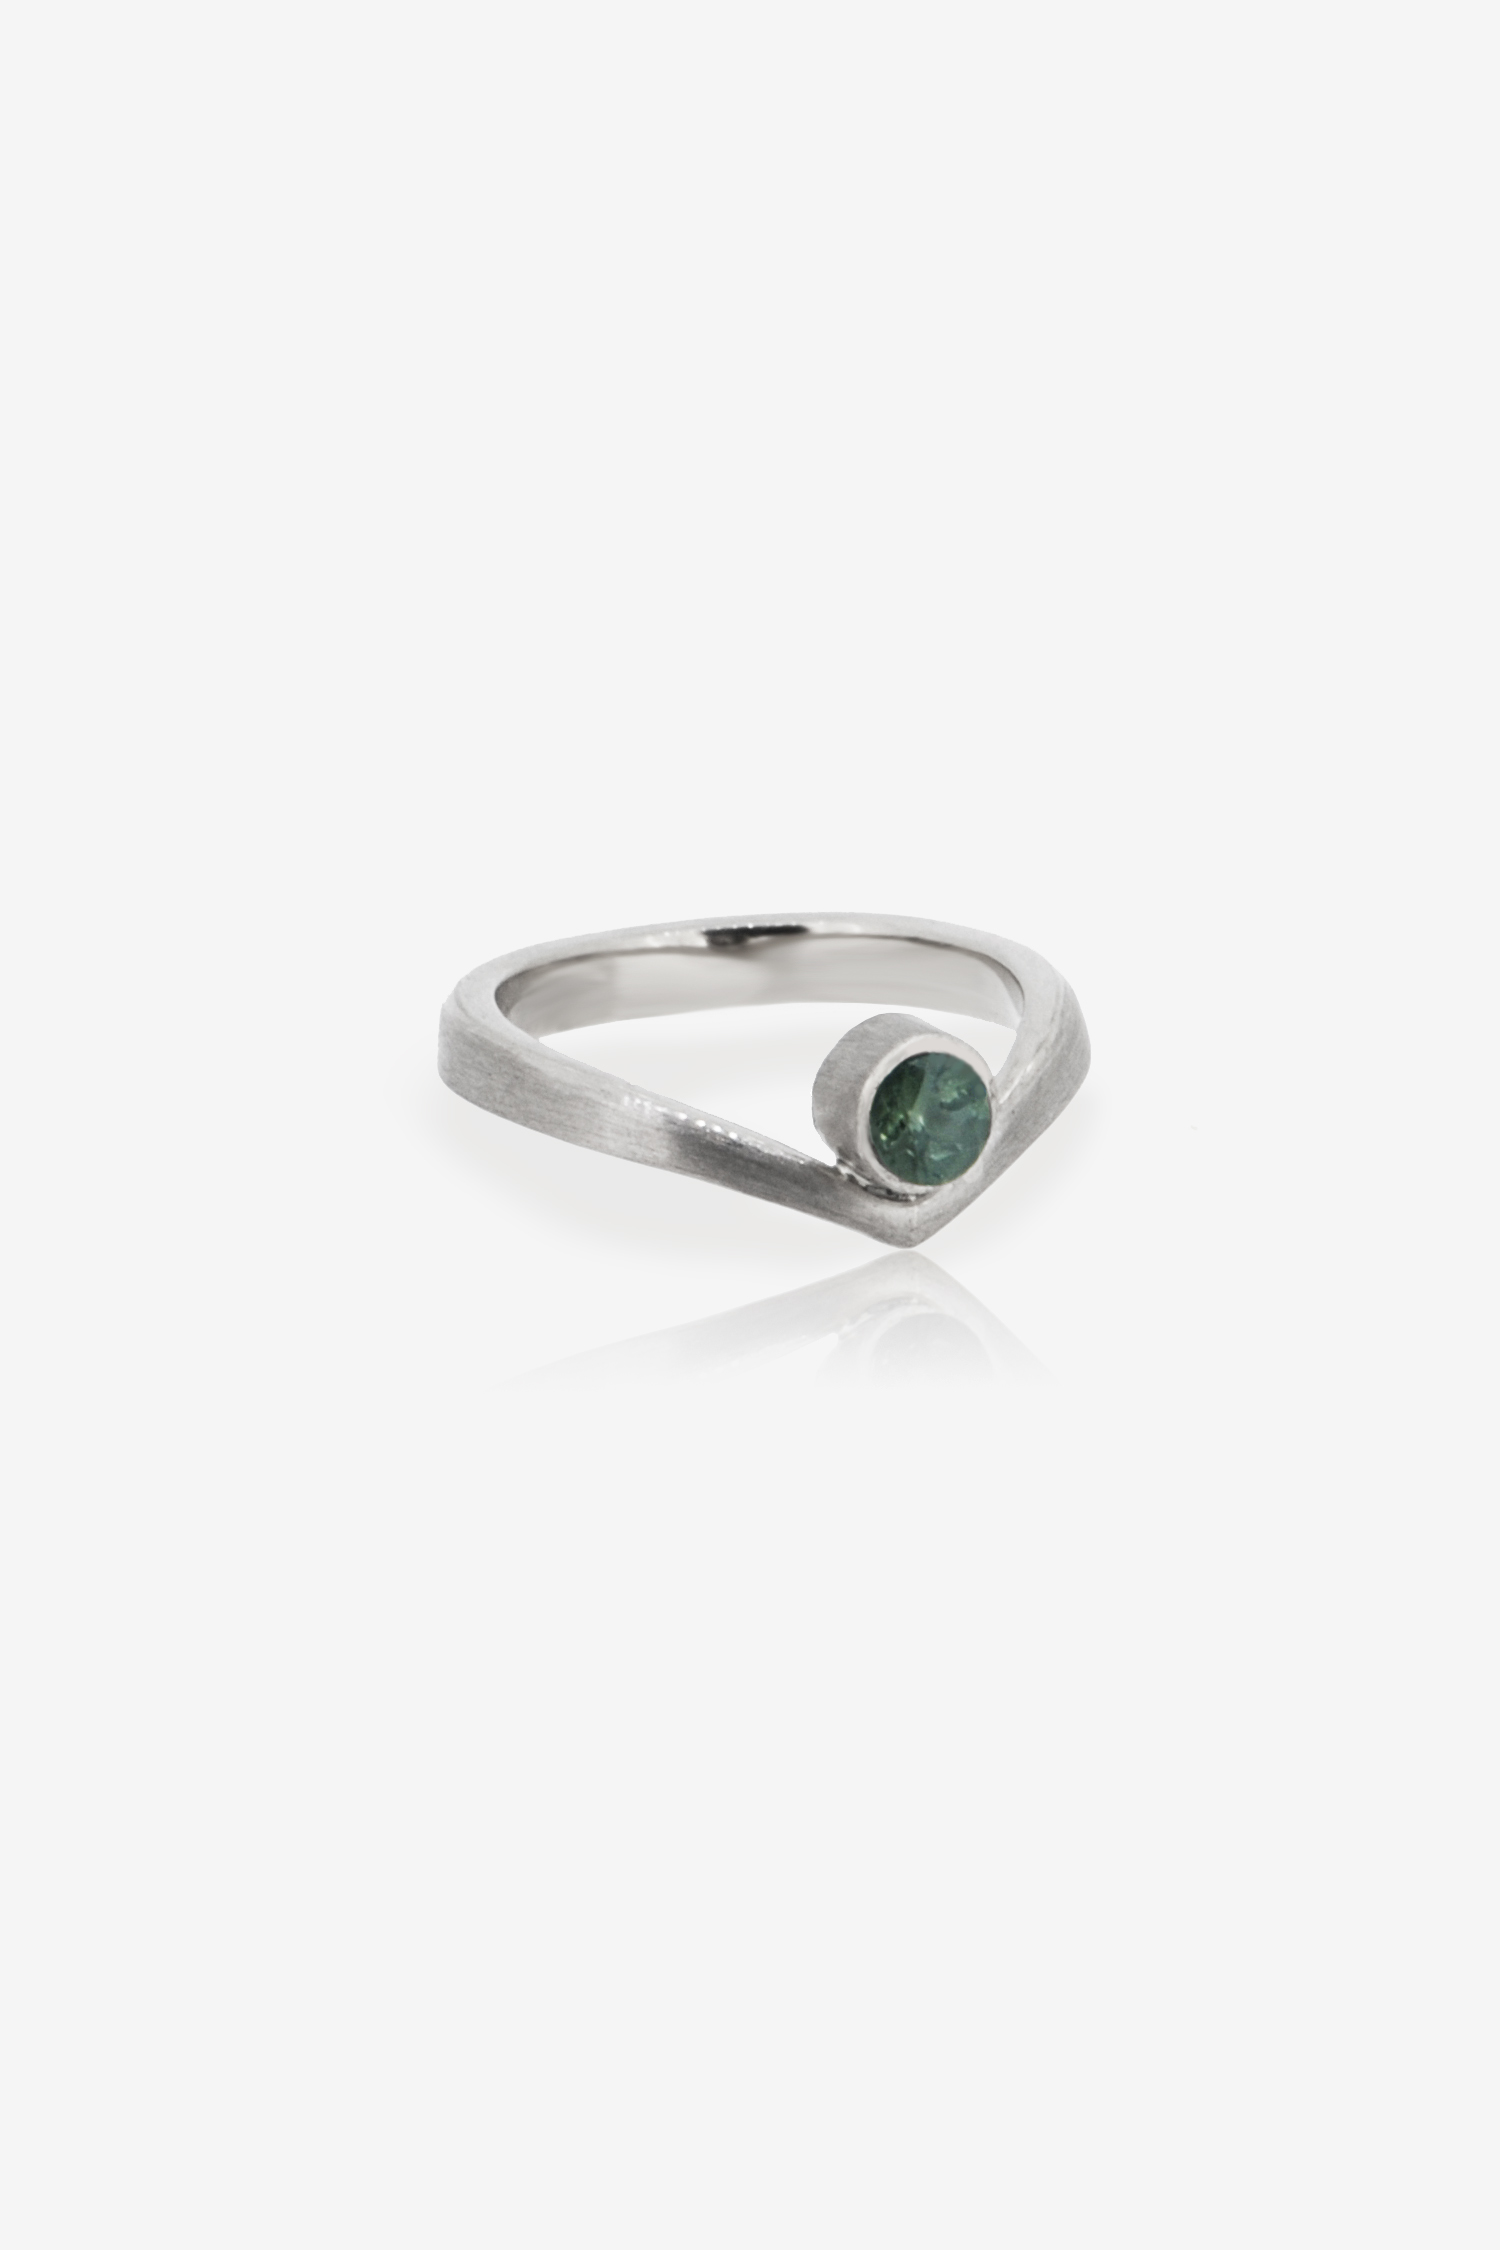 Ethically sourced green-blue Malawi Sapphire engagement ring